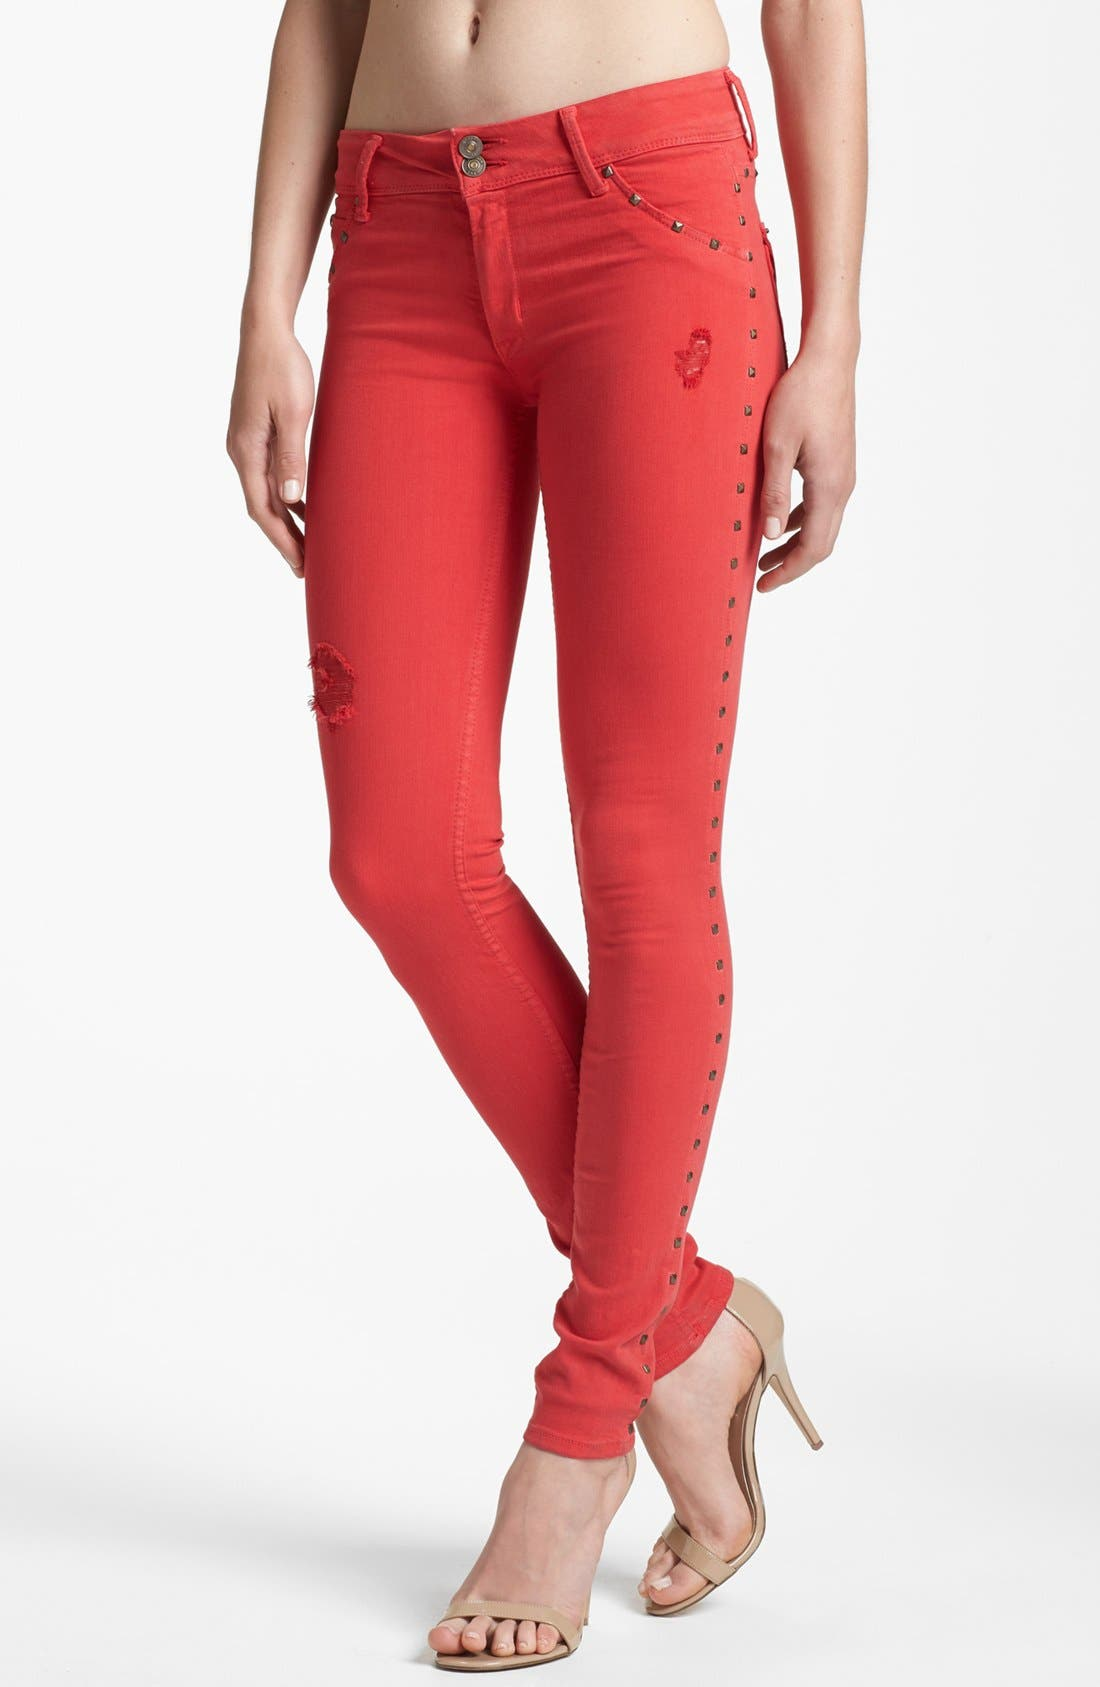 Alternate Image 1 Selected - Hudson Jeans 'Collin' Skinny Stretch Jeans (Red Dahlia)